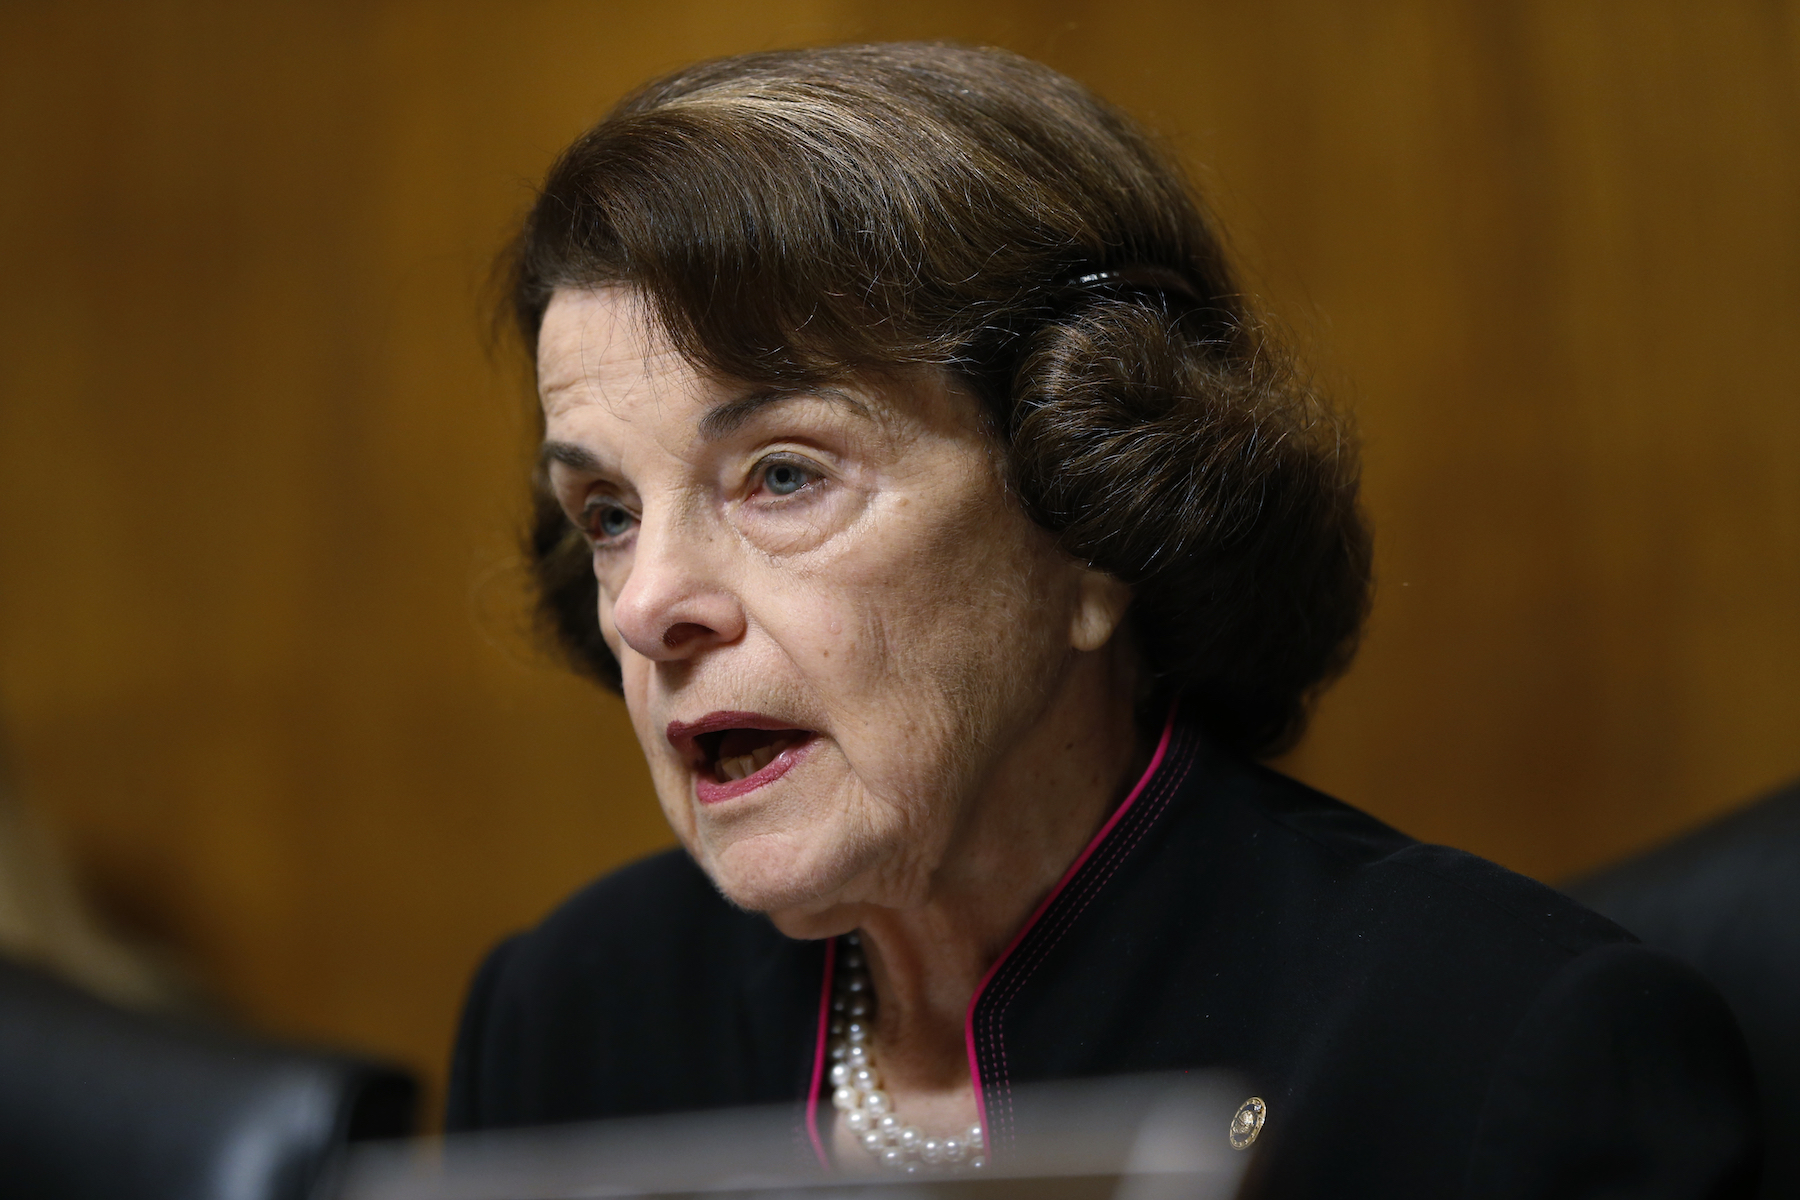 "<div class=""meta image-caption""><div class=""origin-logo origin-image ap""><span>AP</span></div><span class=""caption-text"">Senator Dianna Feinstein peaks at the Senate Judiciary Committee hearing on the nomination of Brett Kavanaugh to be an associate justice of the Supreme Court of the United States. (AP)</span></div>"